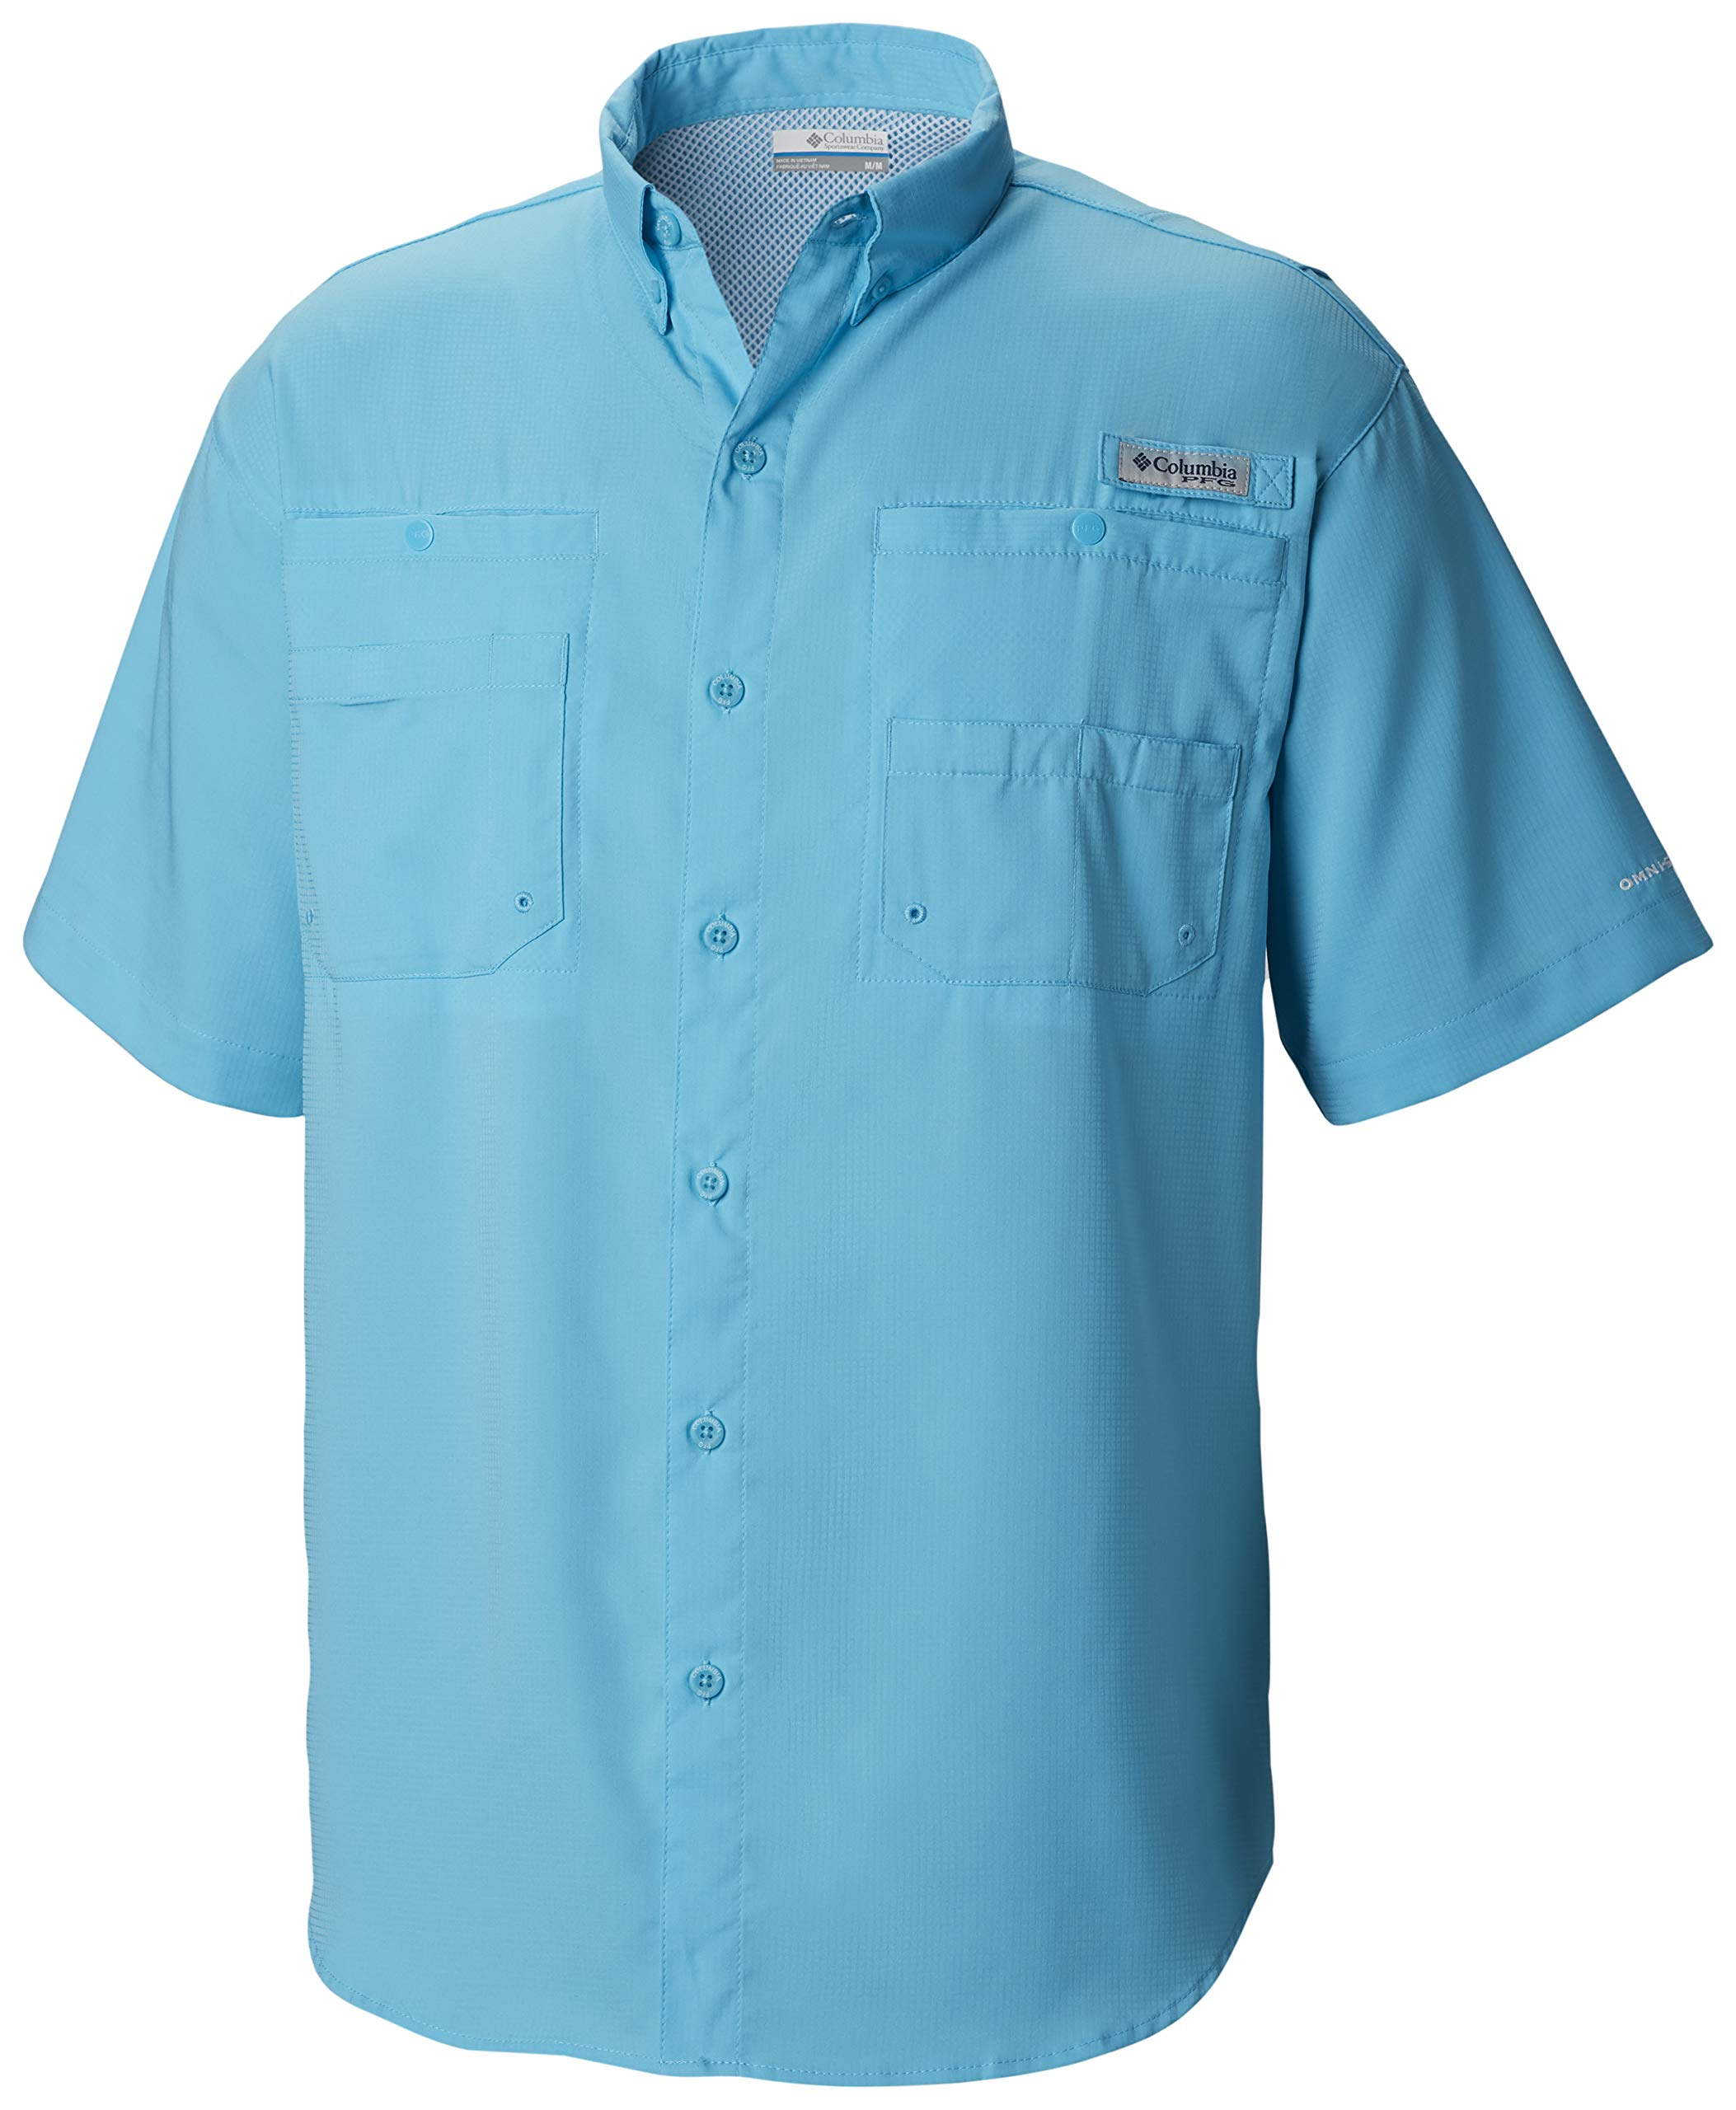 Columbia Men's Tamiami Ii Short Sleeve Shirt, Atoll, Small